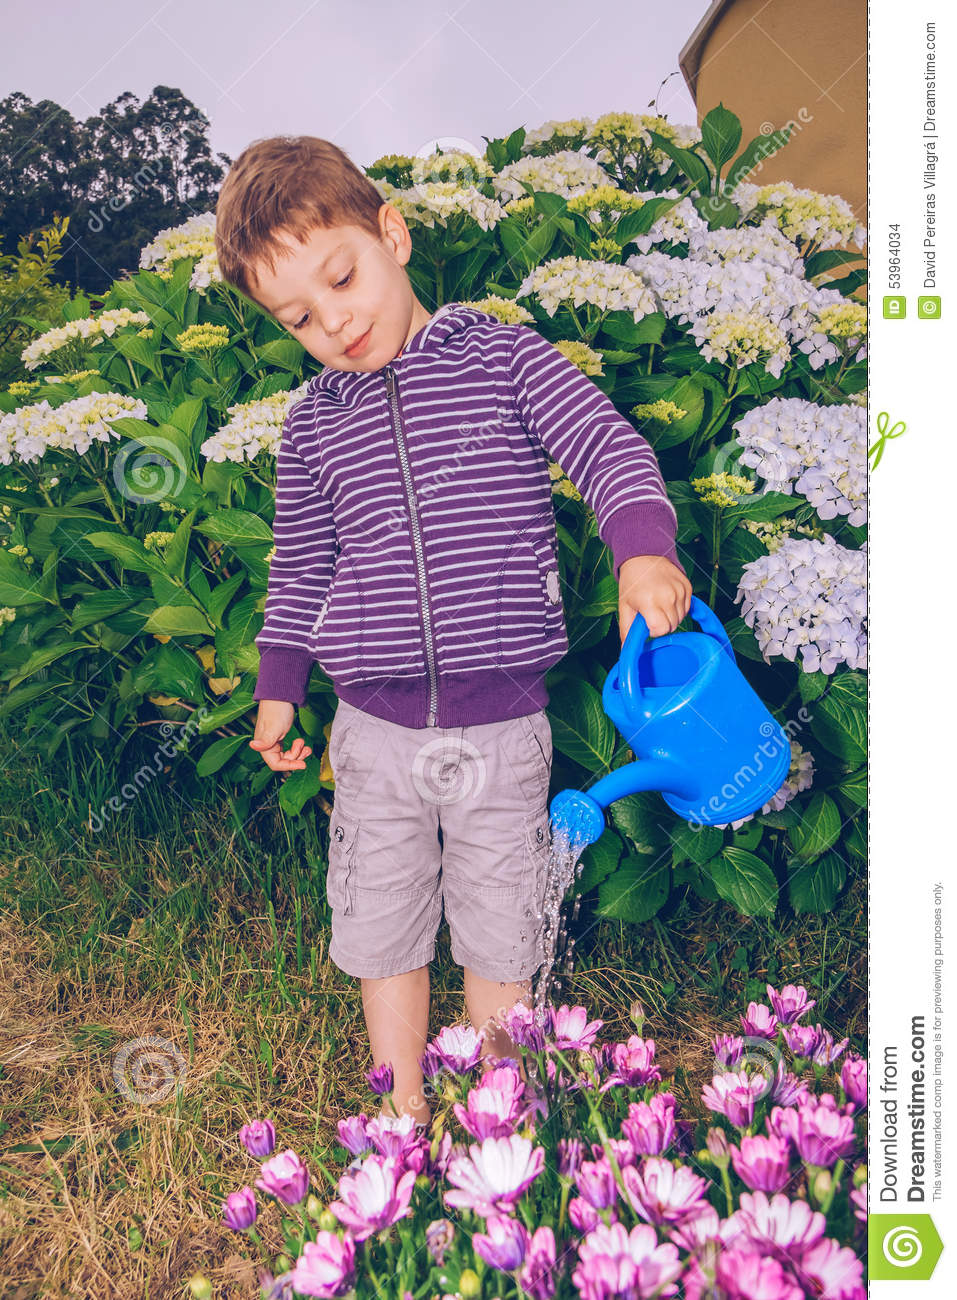 Portrait of happy cute boy watering flowers in the garden with a blue